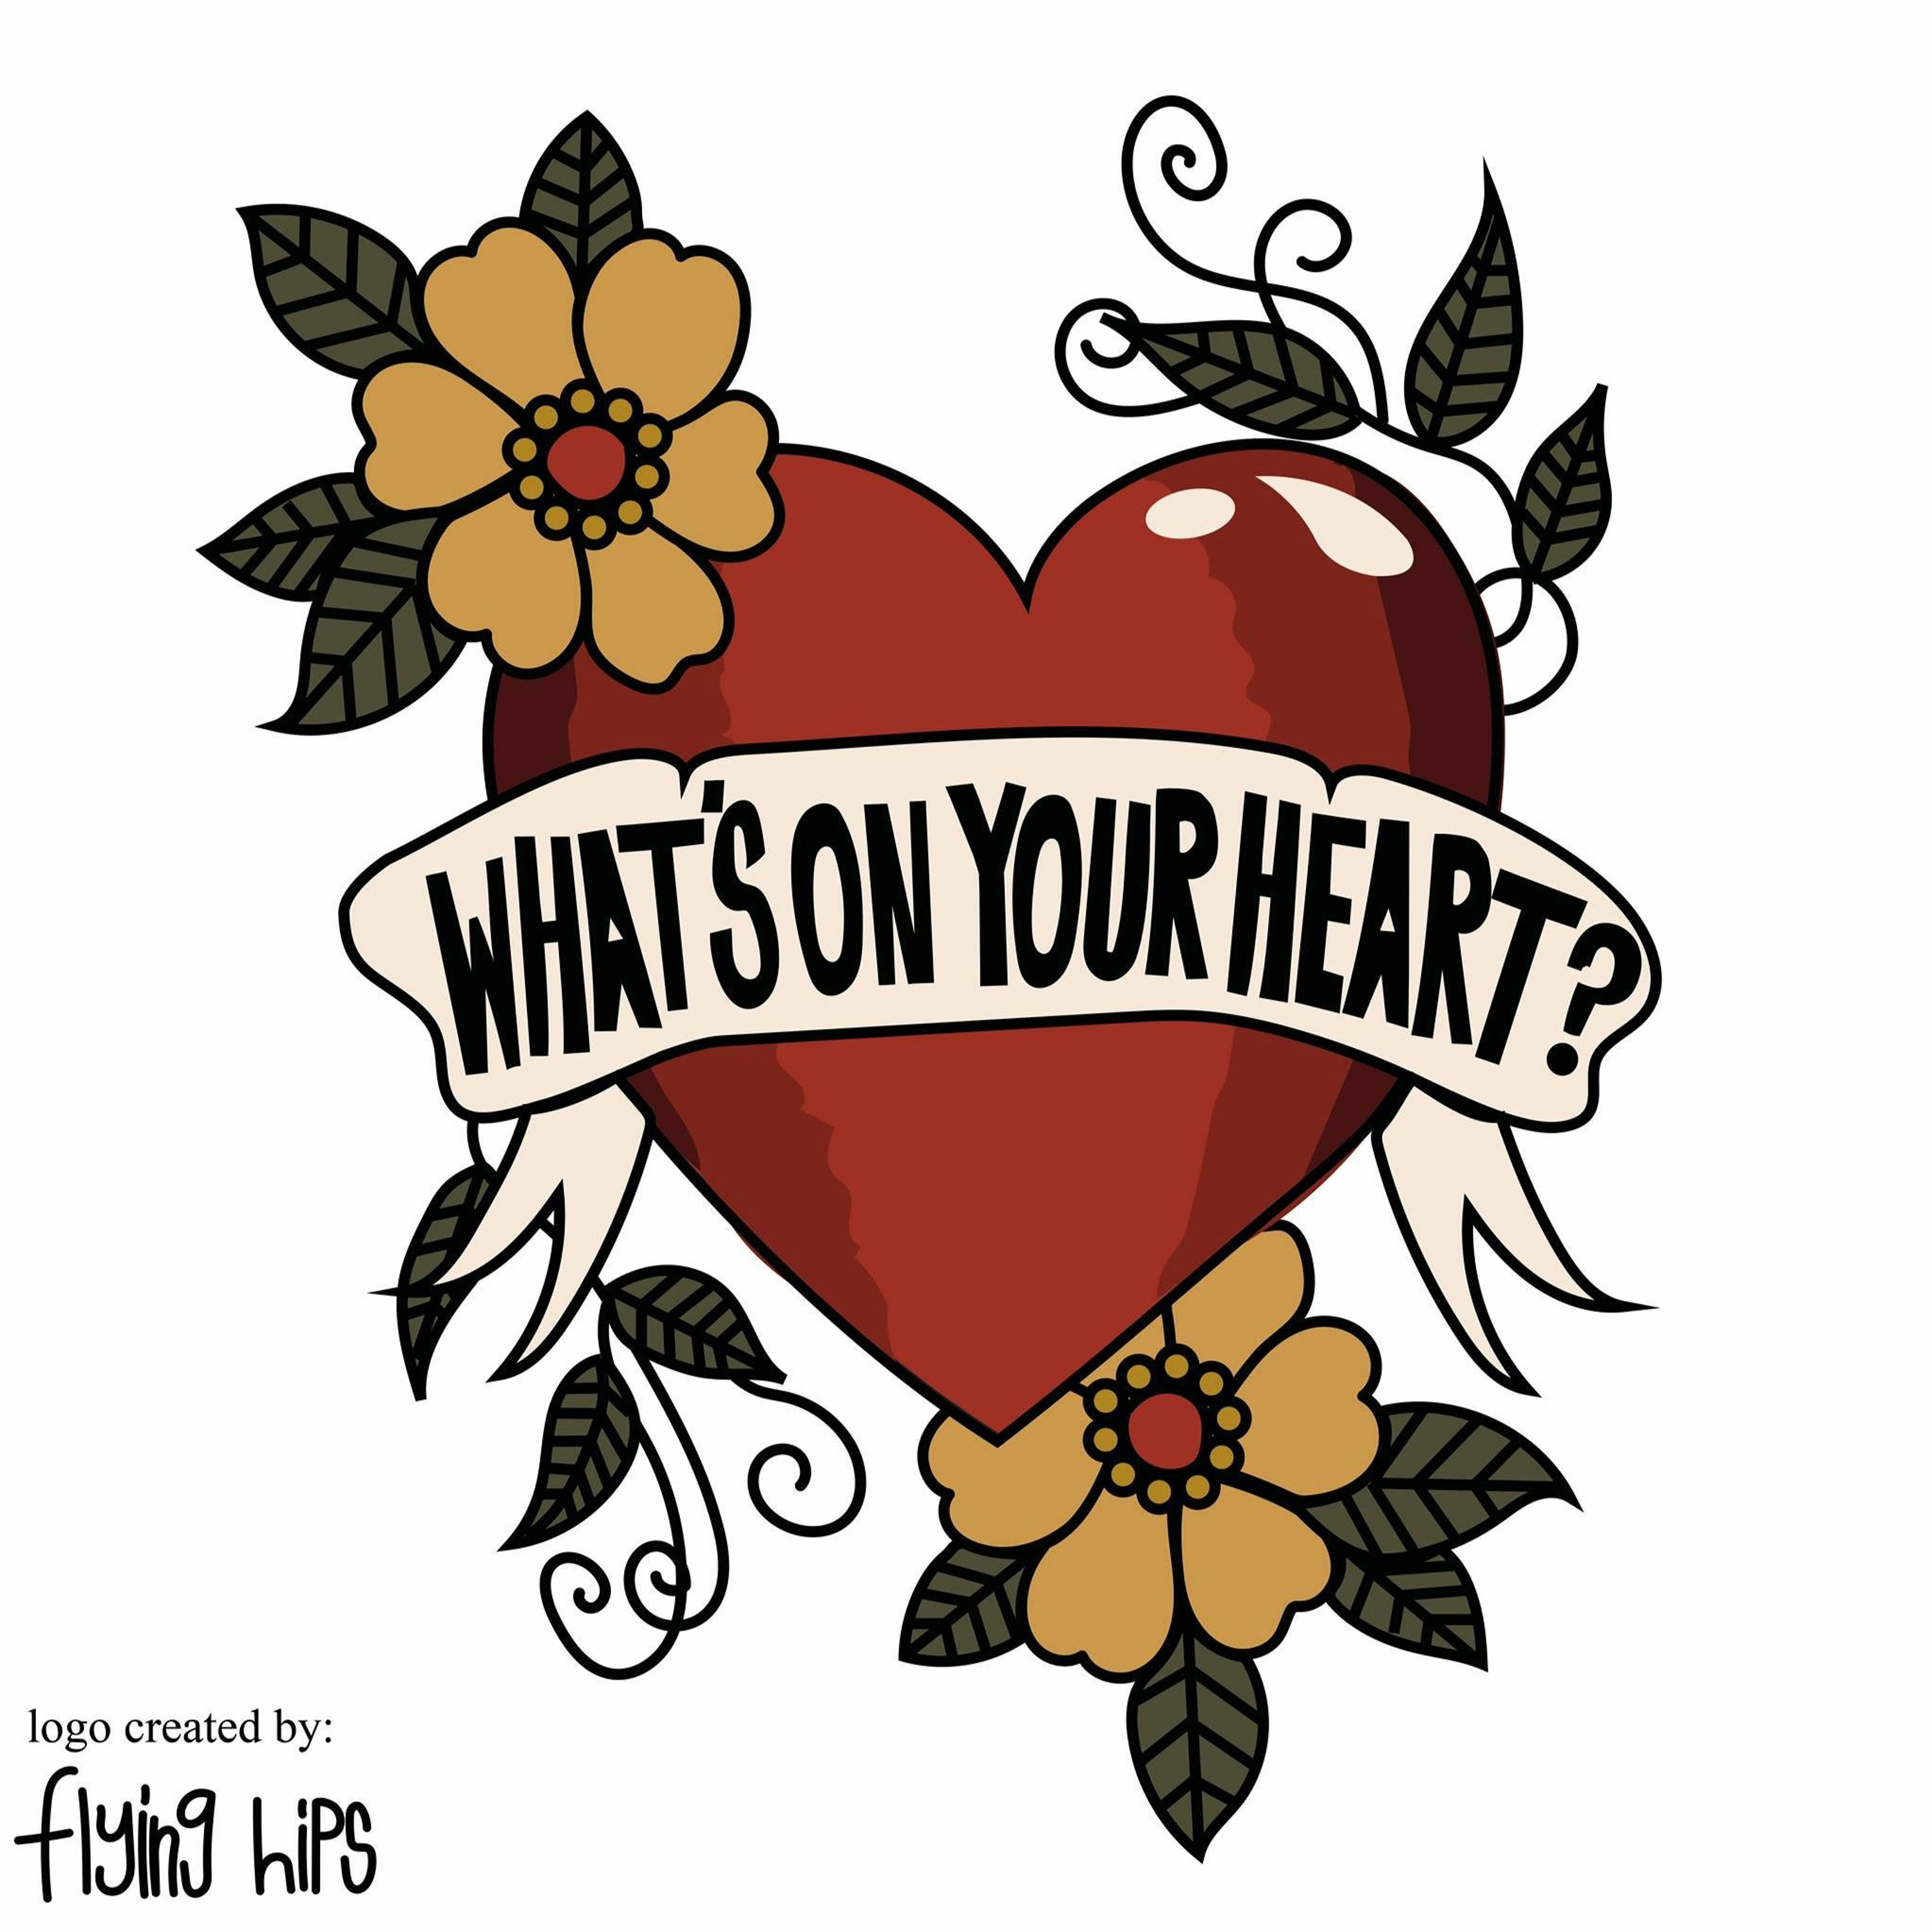 Episode 1. What's On Your Heart?